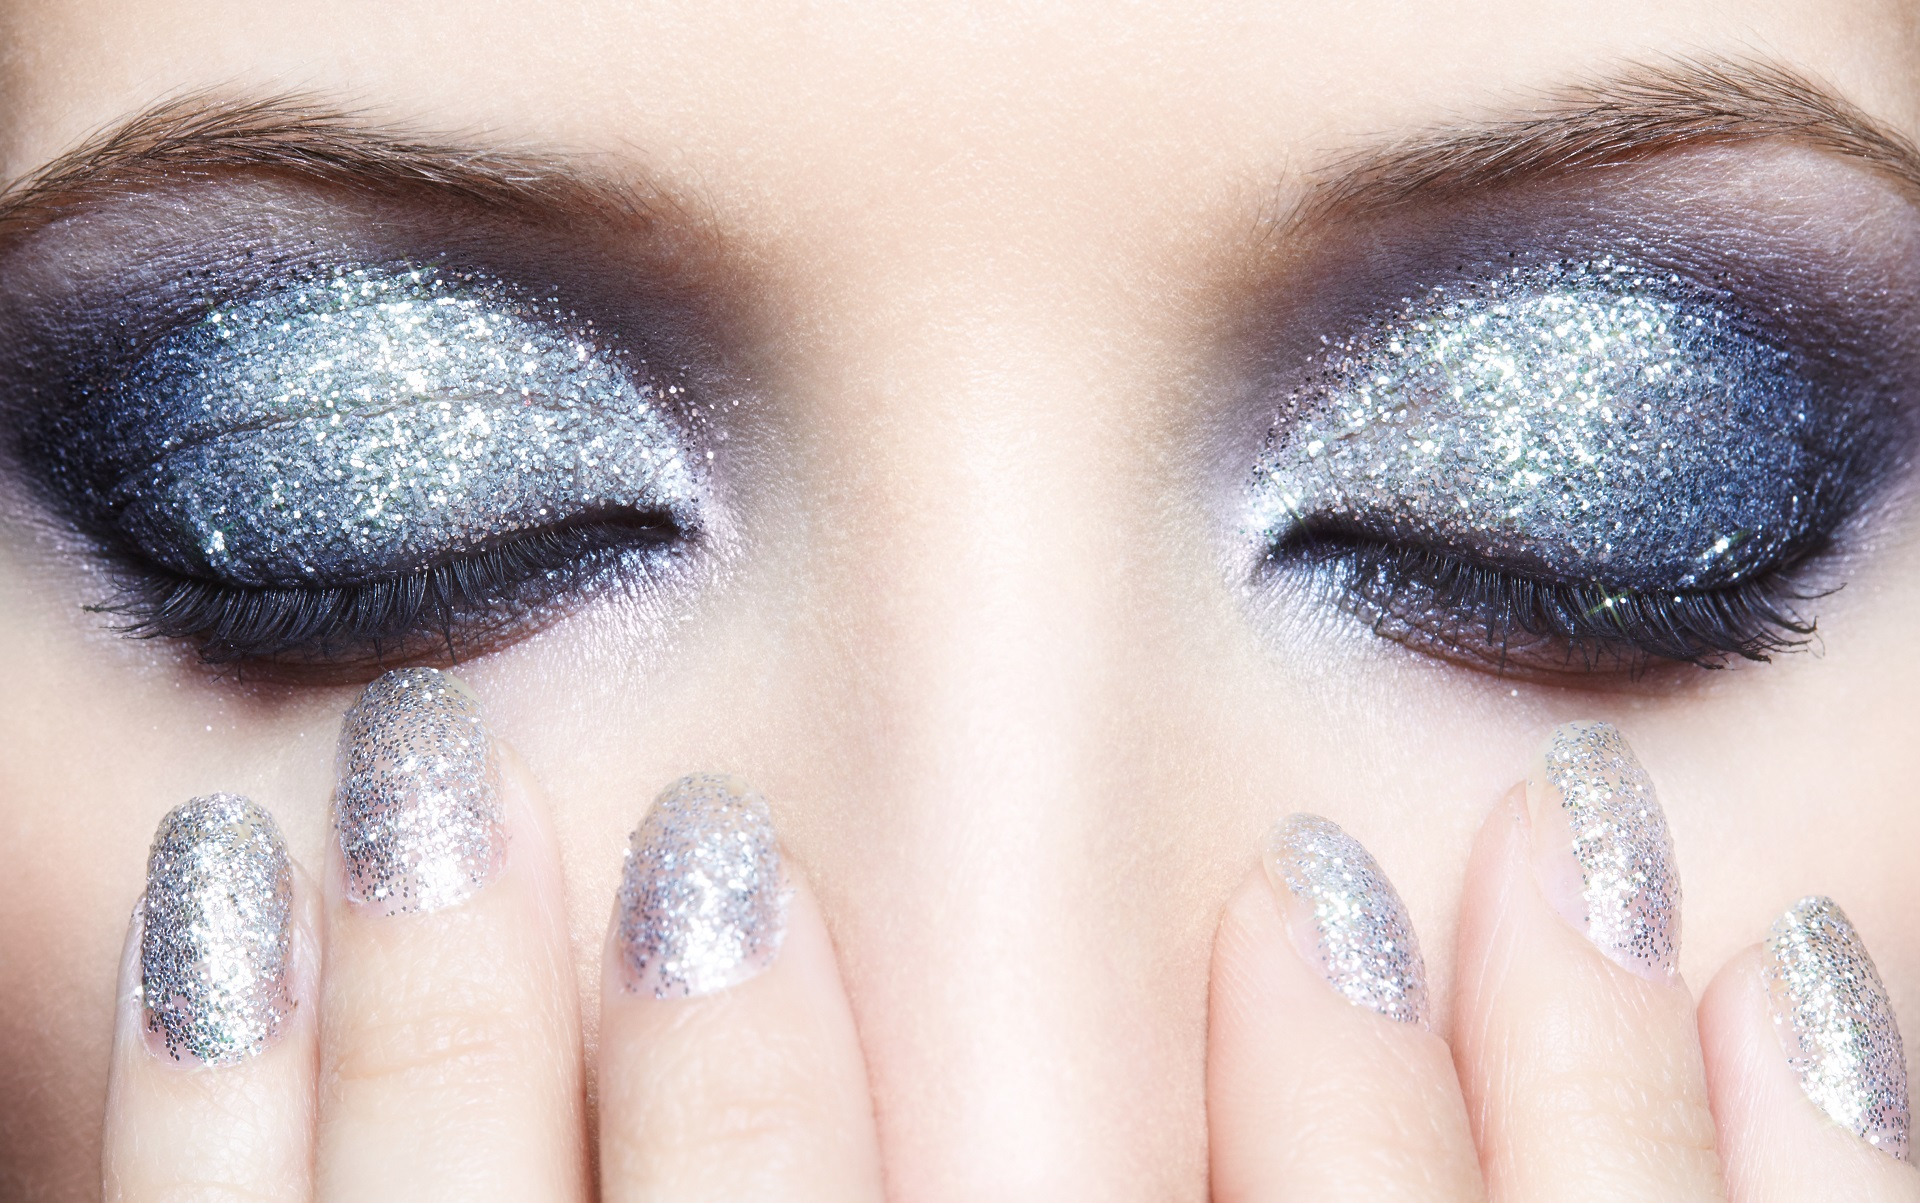 glitter-eyes-and-nails-online-makeup-course-The-Centre-Of-Wellness